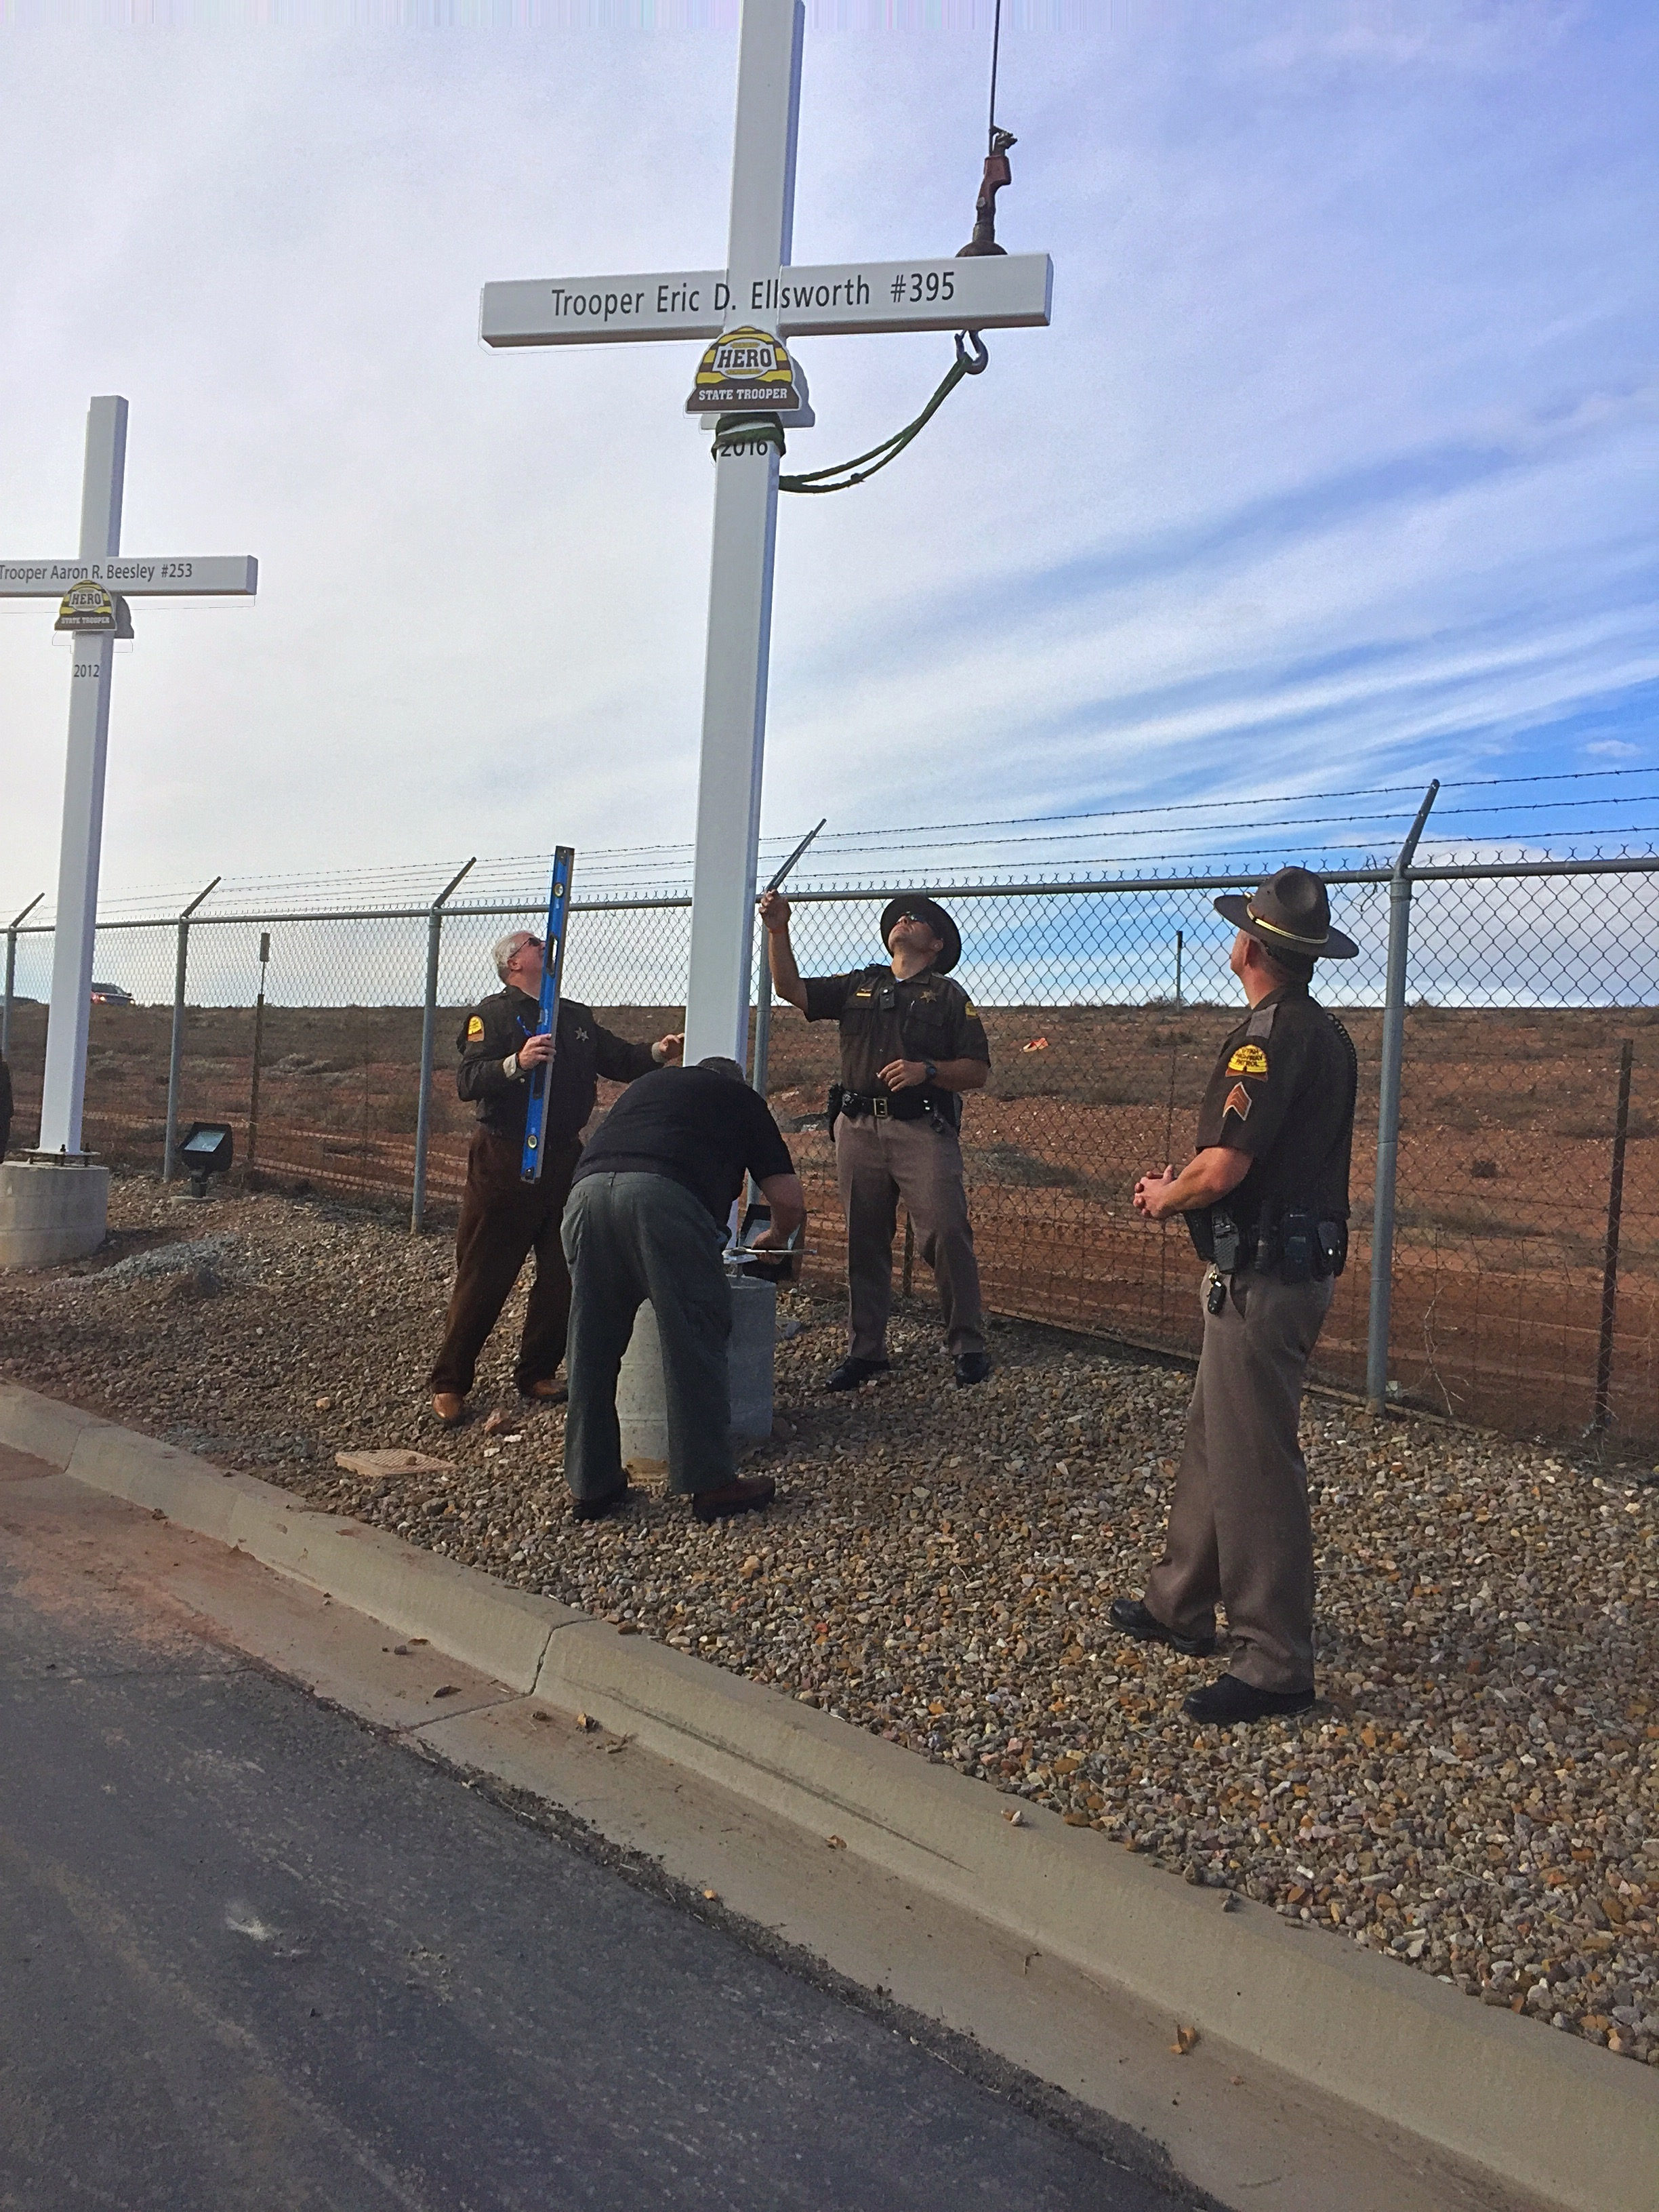 A memorial cross was erected along Interstate 15 in honor of Utah Highway Patrol Trooper Eric Ellsworth who died last month after being struck by a vehicle, DATS Trucking, 321 N. Old Highway 91, Hurricane, Utah, Dec. 30, 2016 | Photo by Kimberly Scott, St. George News